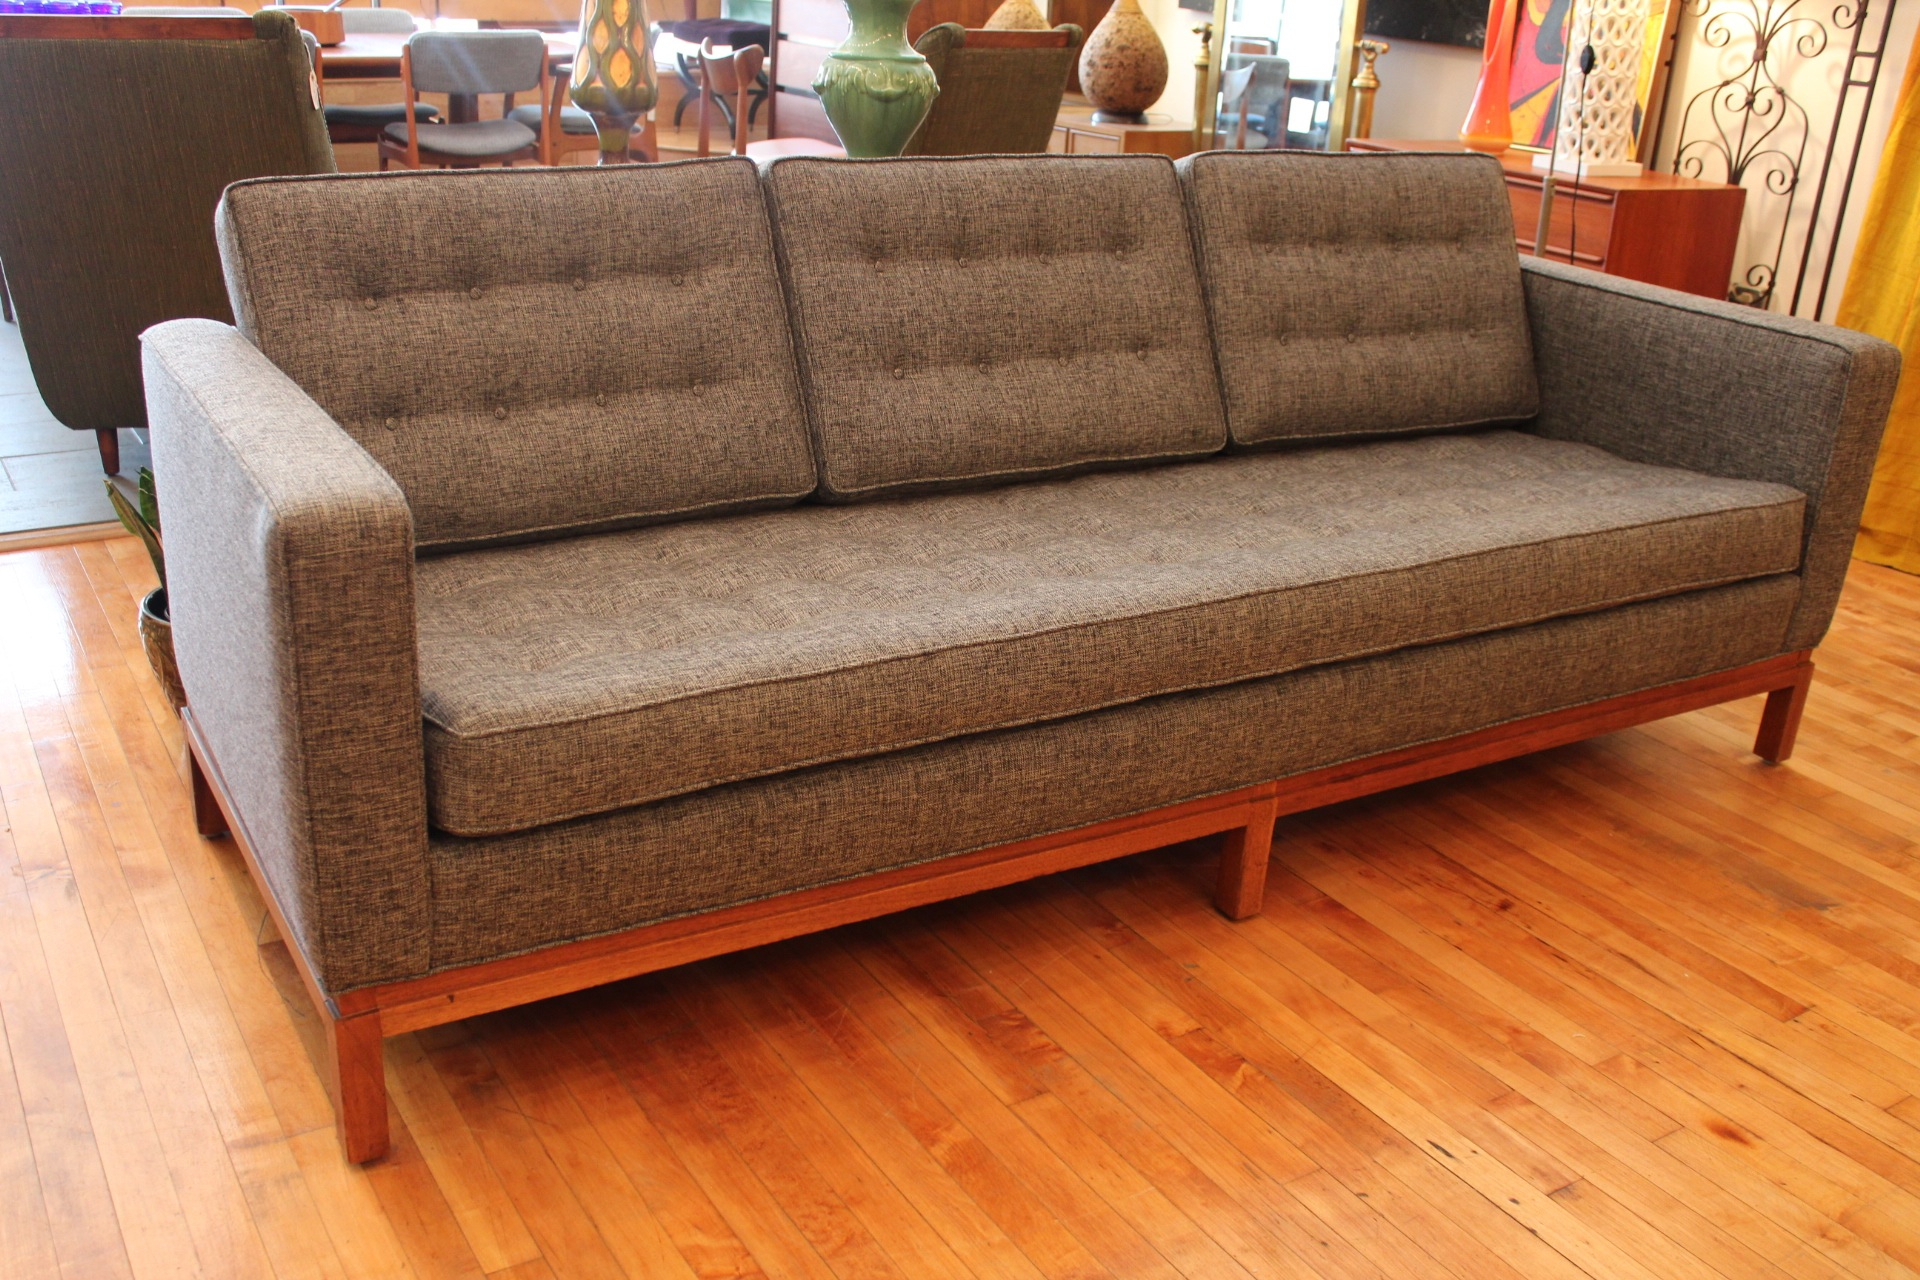 Florence Knoll Sofa Intended For Florence Knoll Living Room Sofas (View 14 of 15)